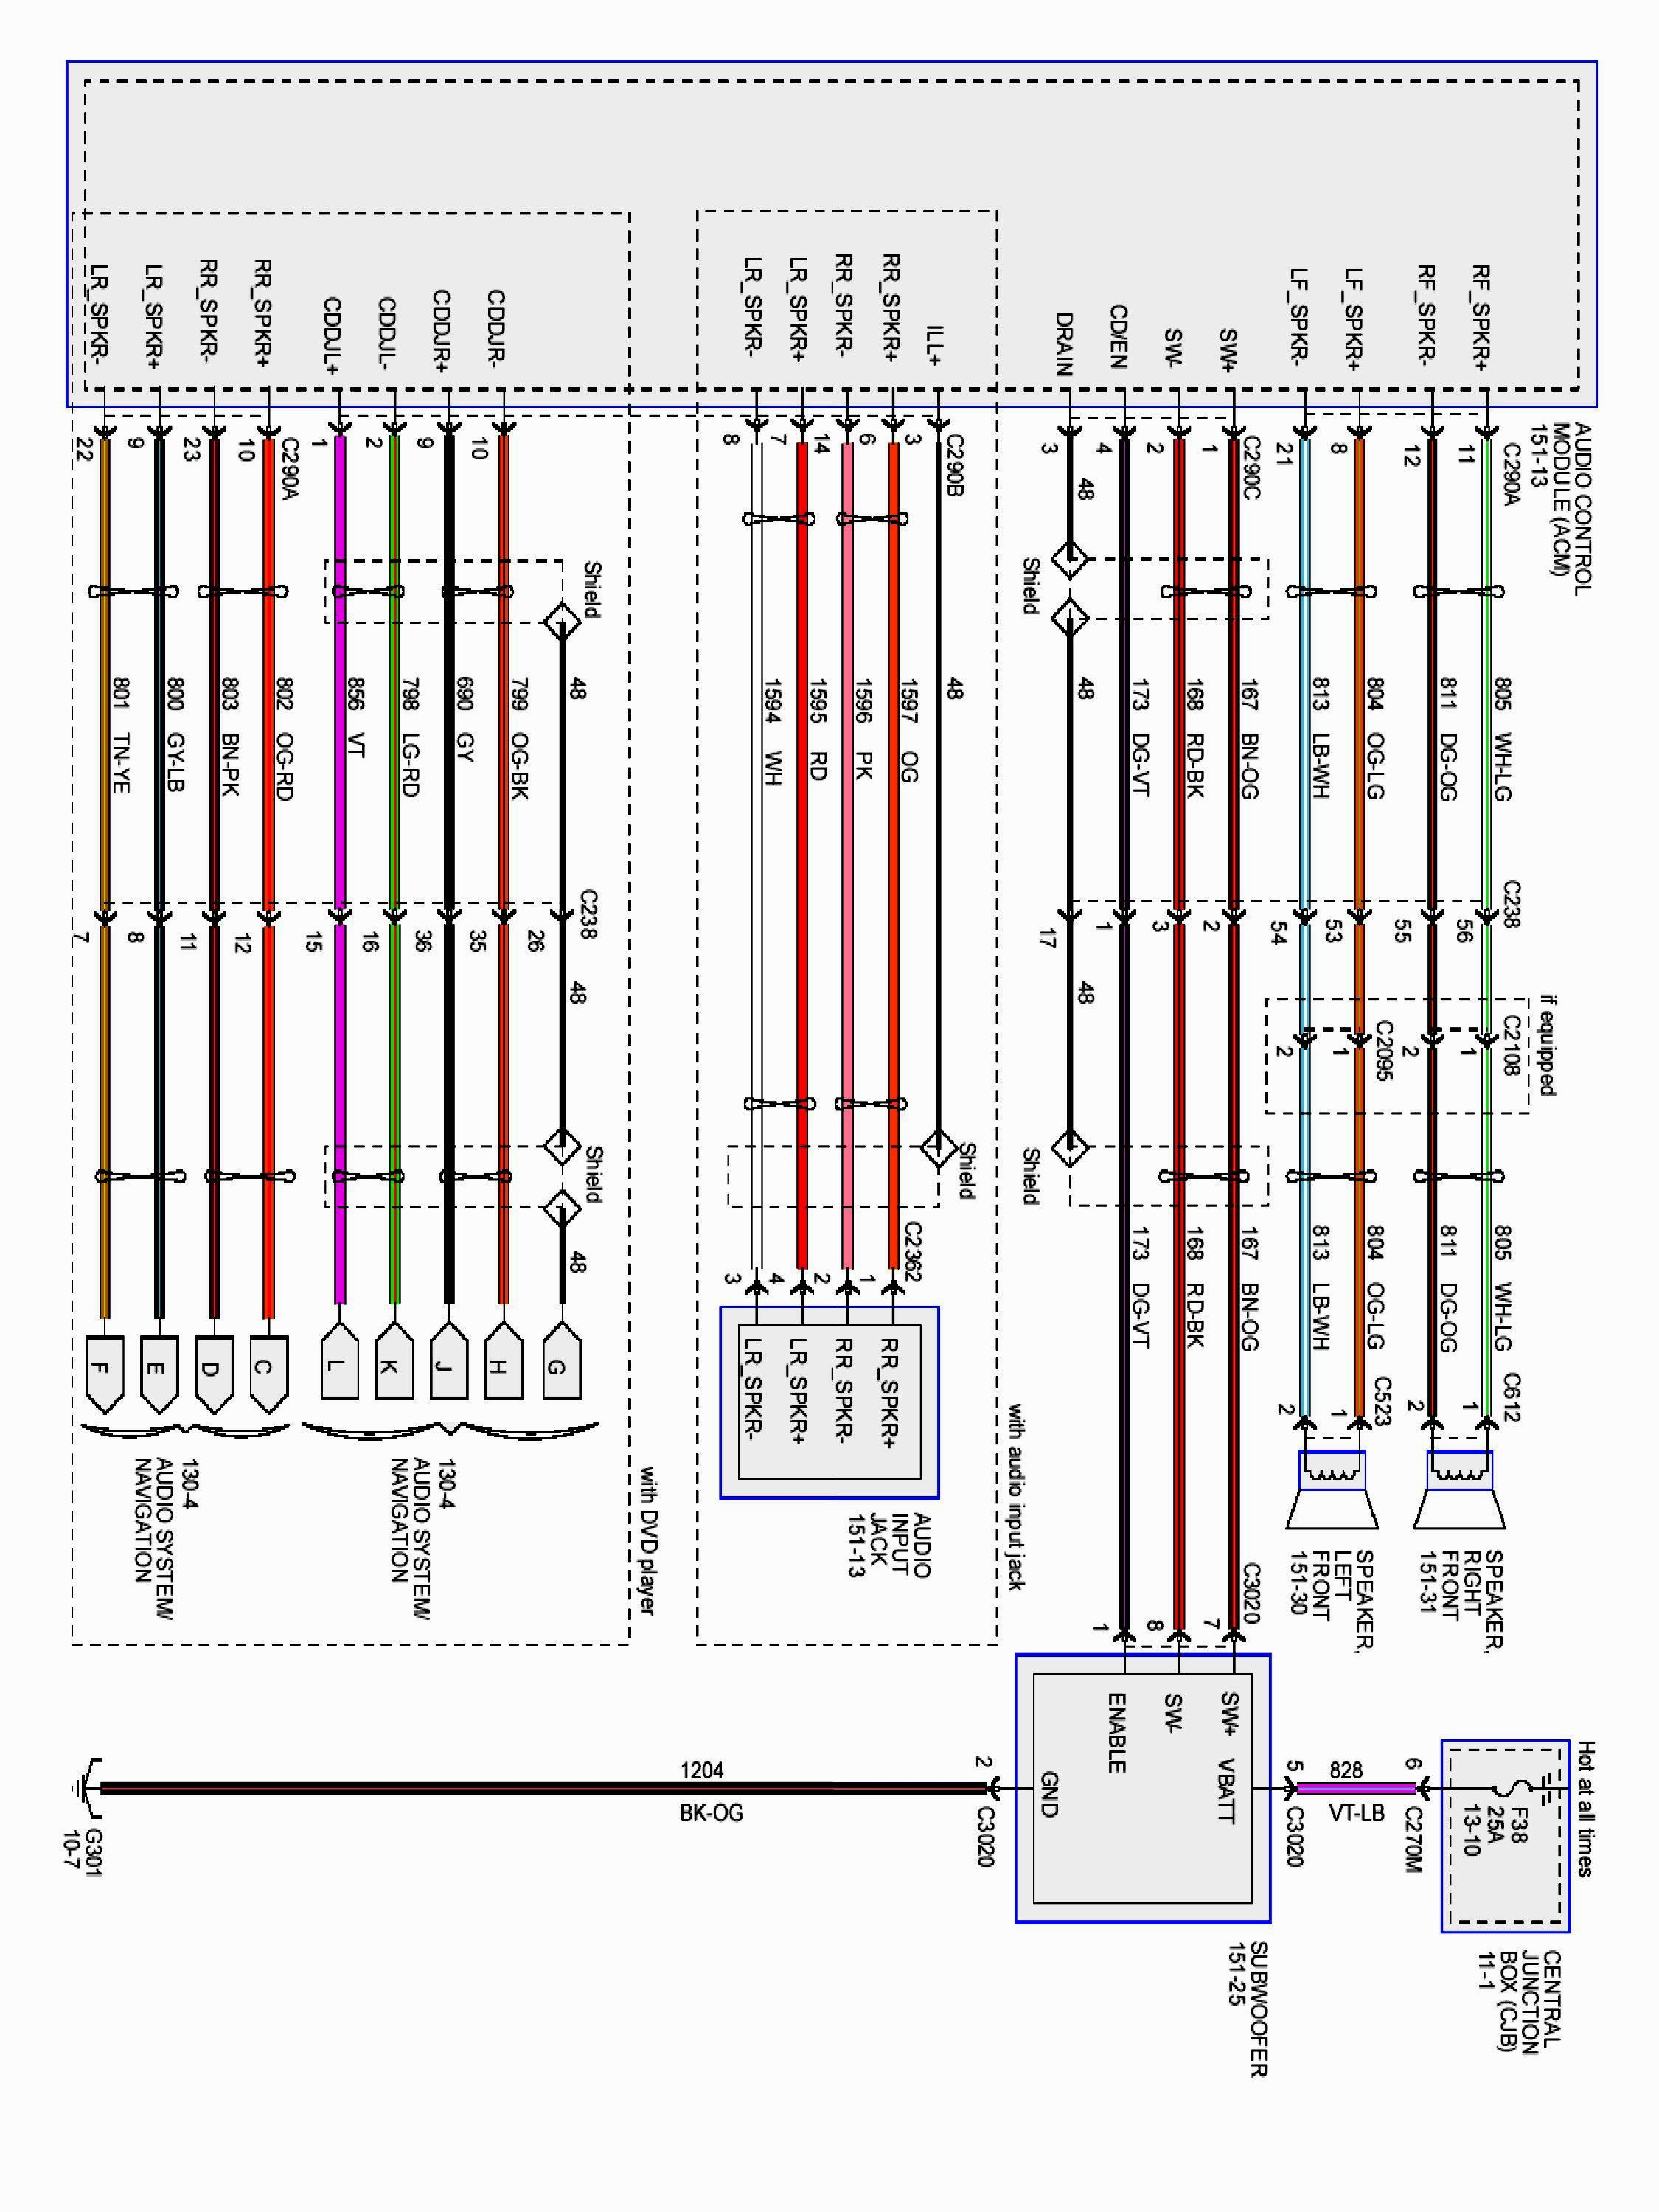 2001 f150 wiring diagram - wiring diagrams post rub-park -  rub-park.michelegori.it  michelegori.it